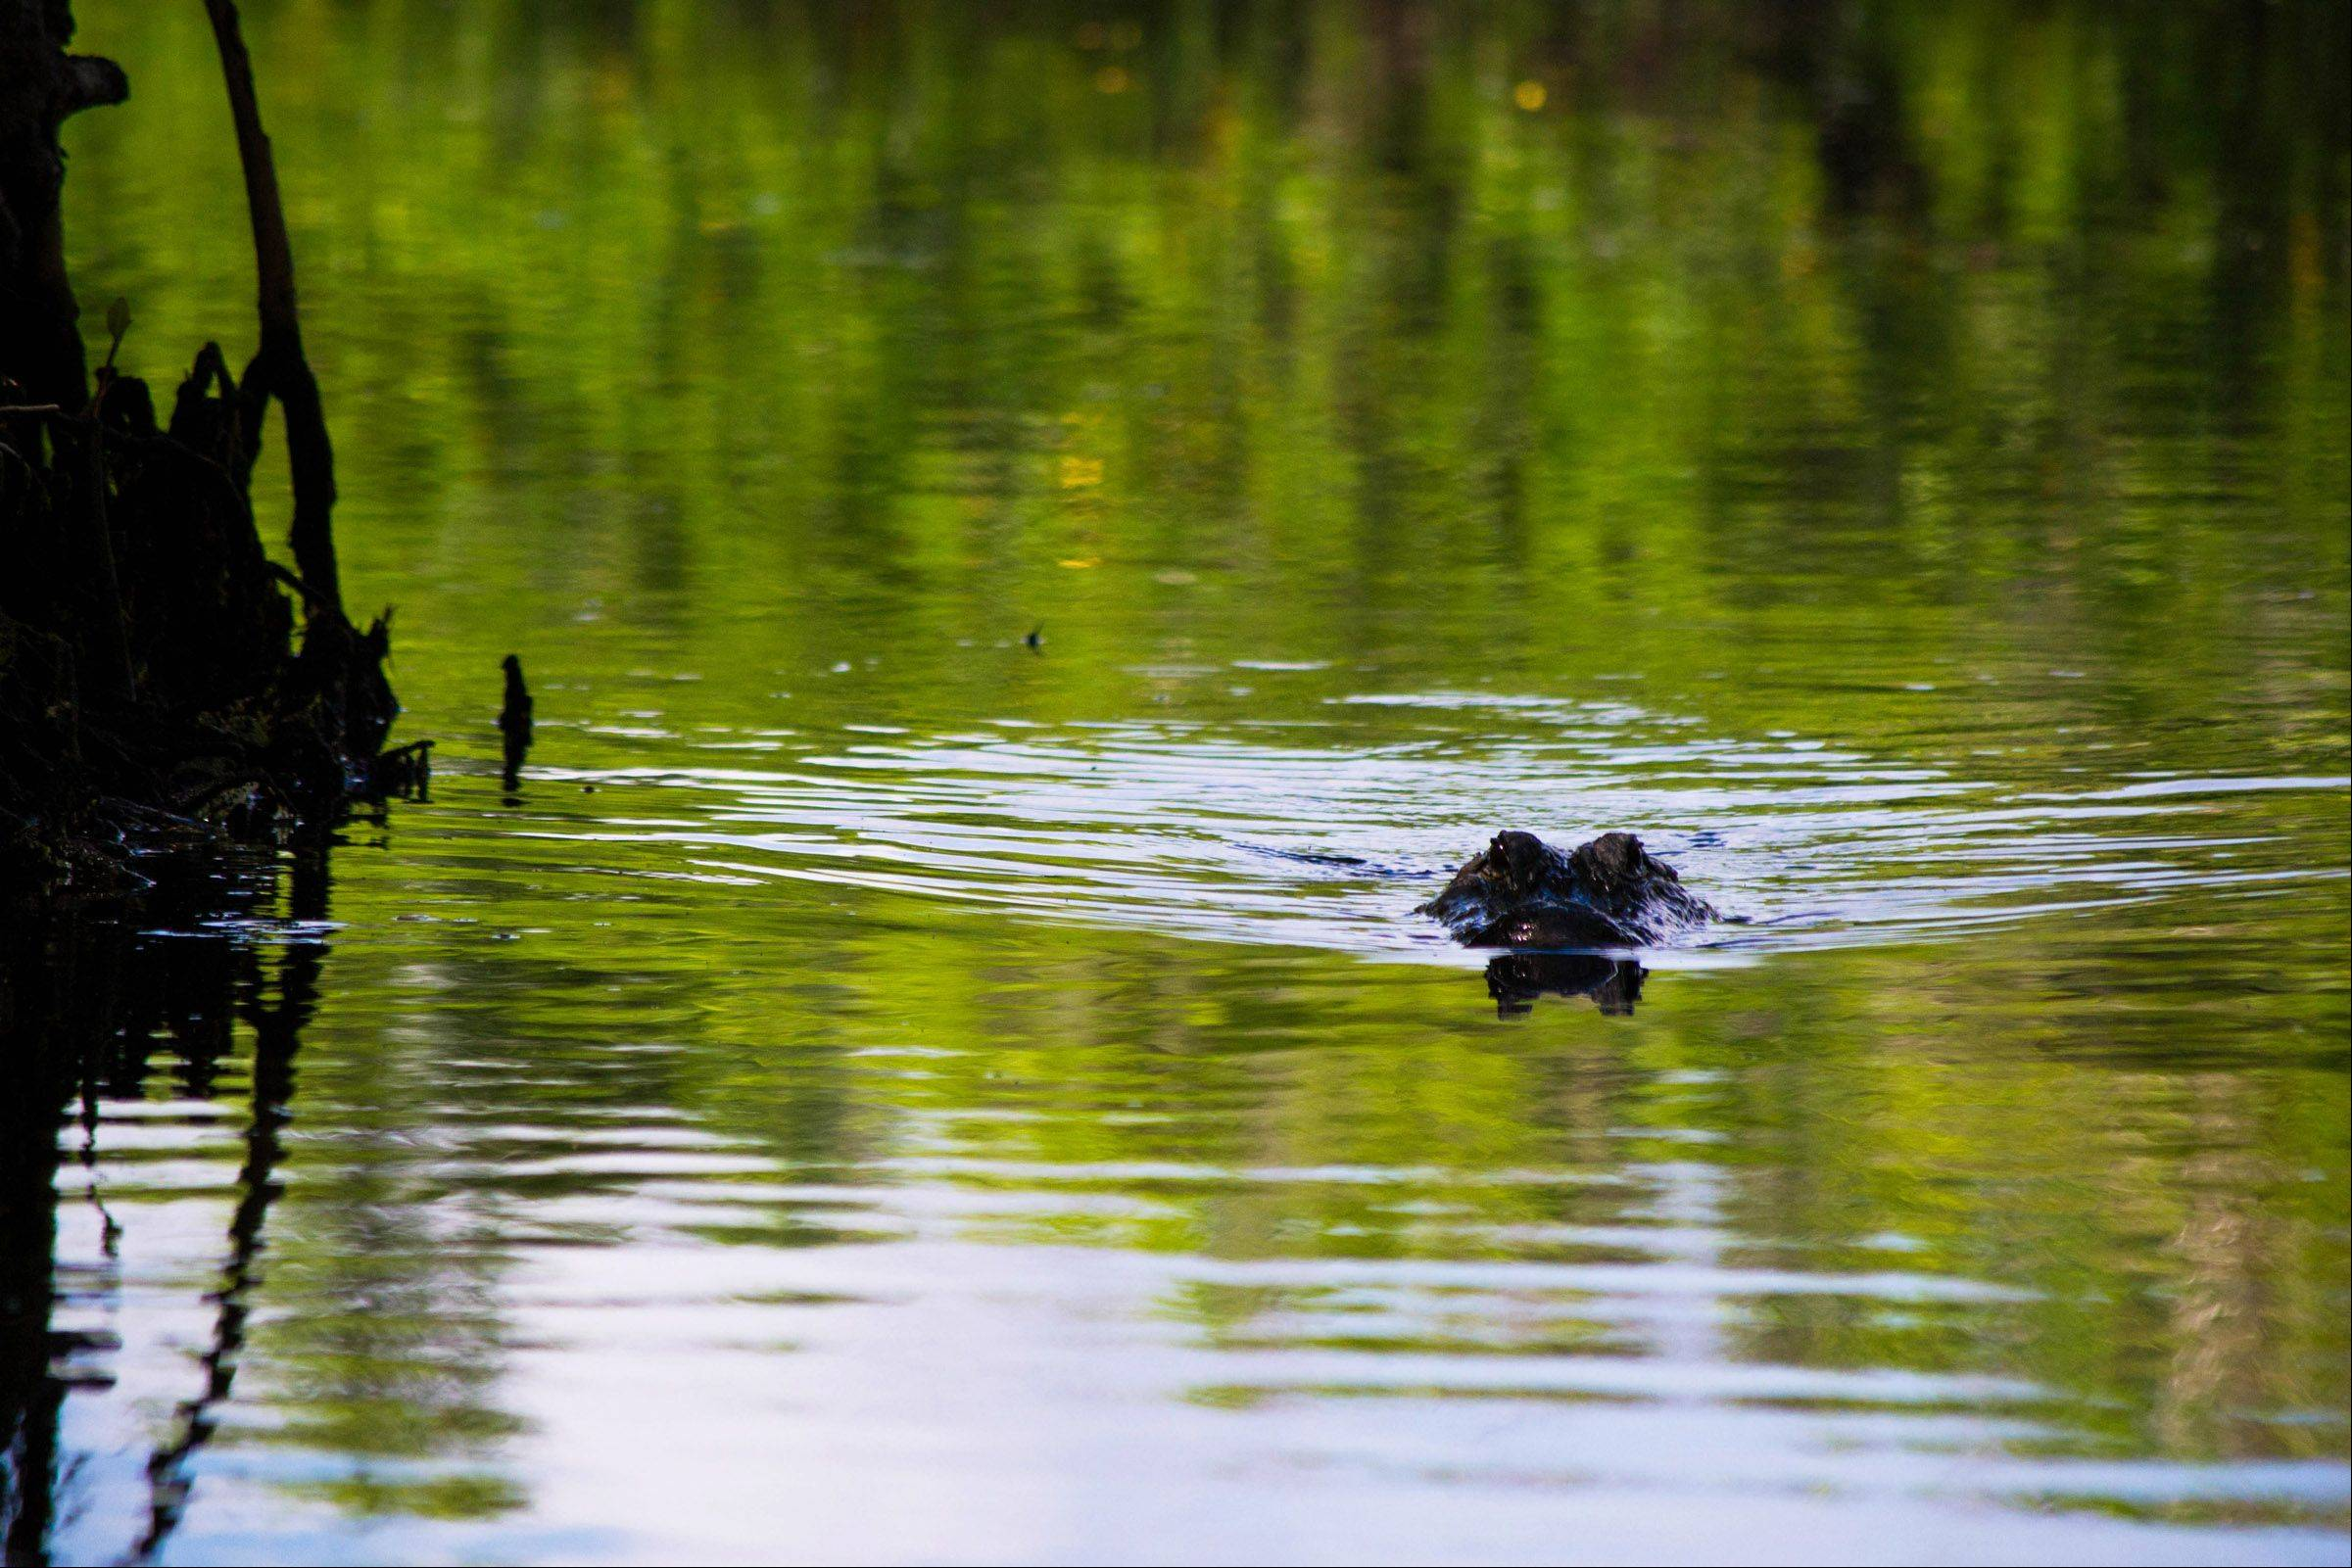 An American alligator approaches the shore while in the Everglades, Fla. on Friday, September 14th.